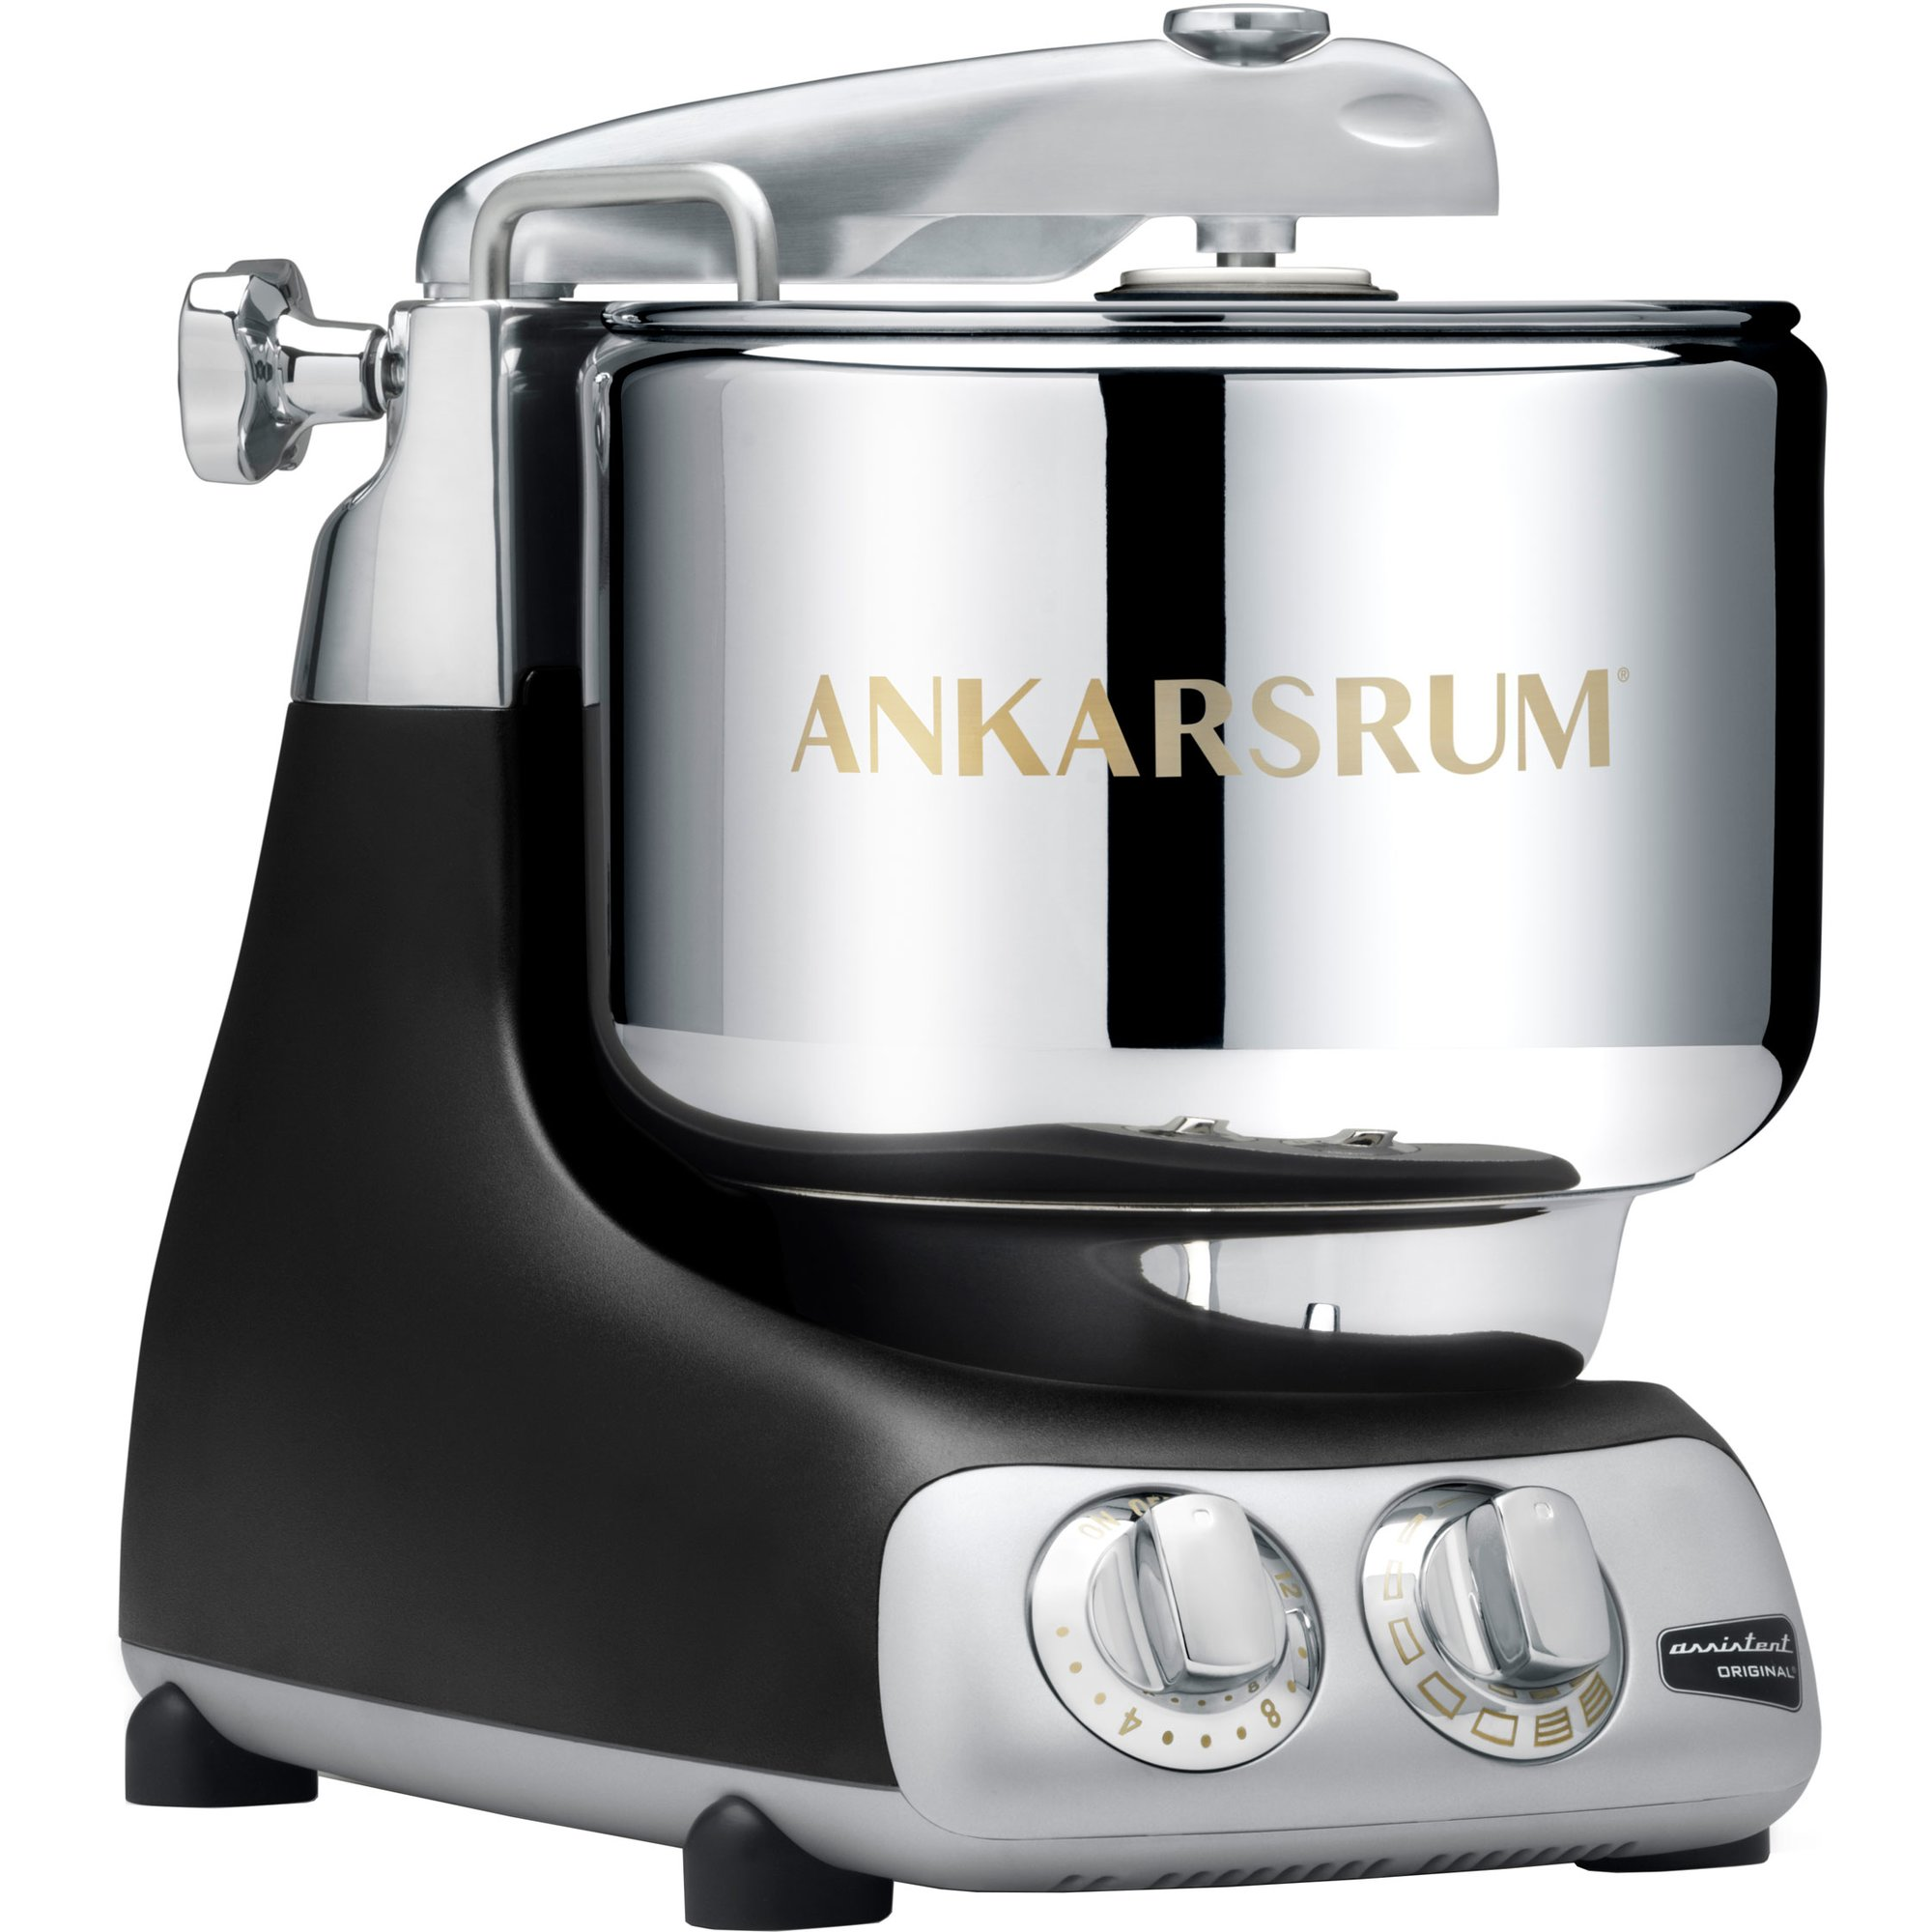 Ankarsrum Assistent Original AKM6230B Mattsvartmed Köttkvarnspaket